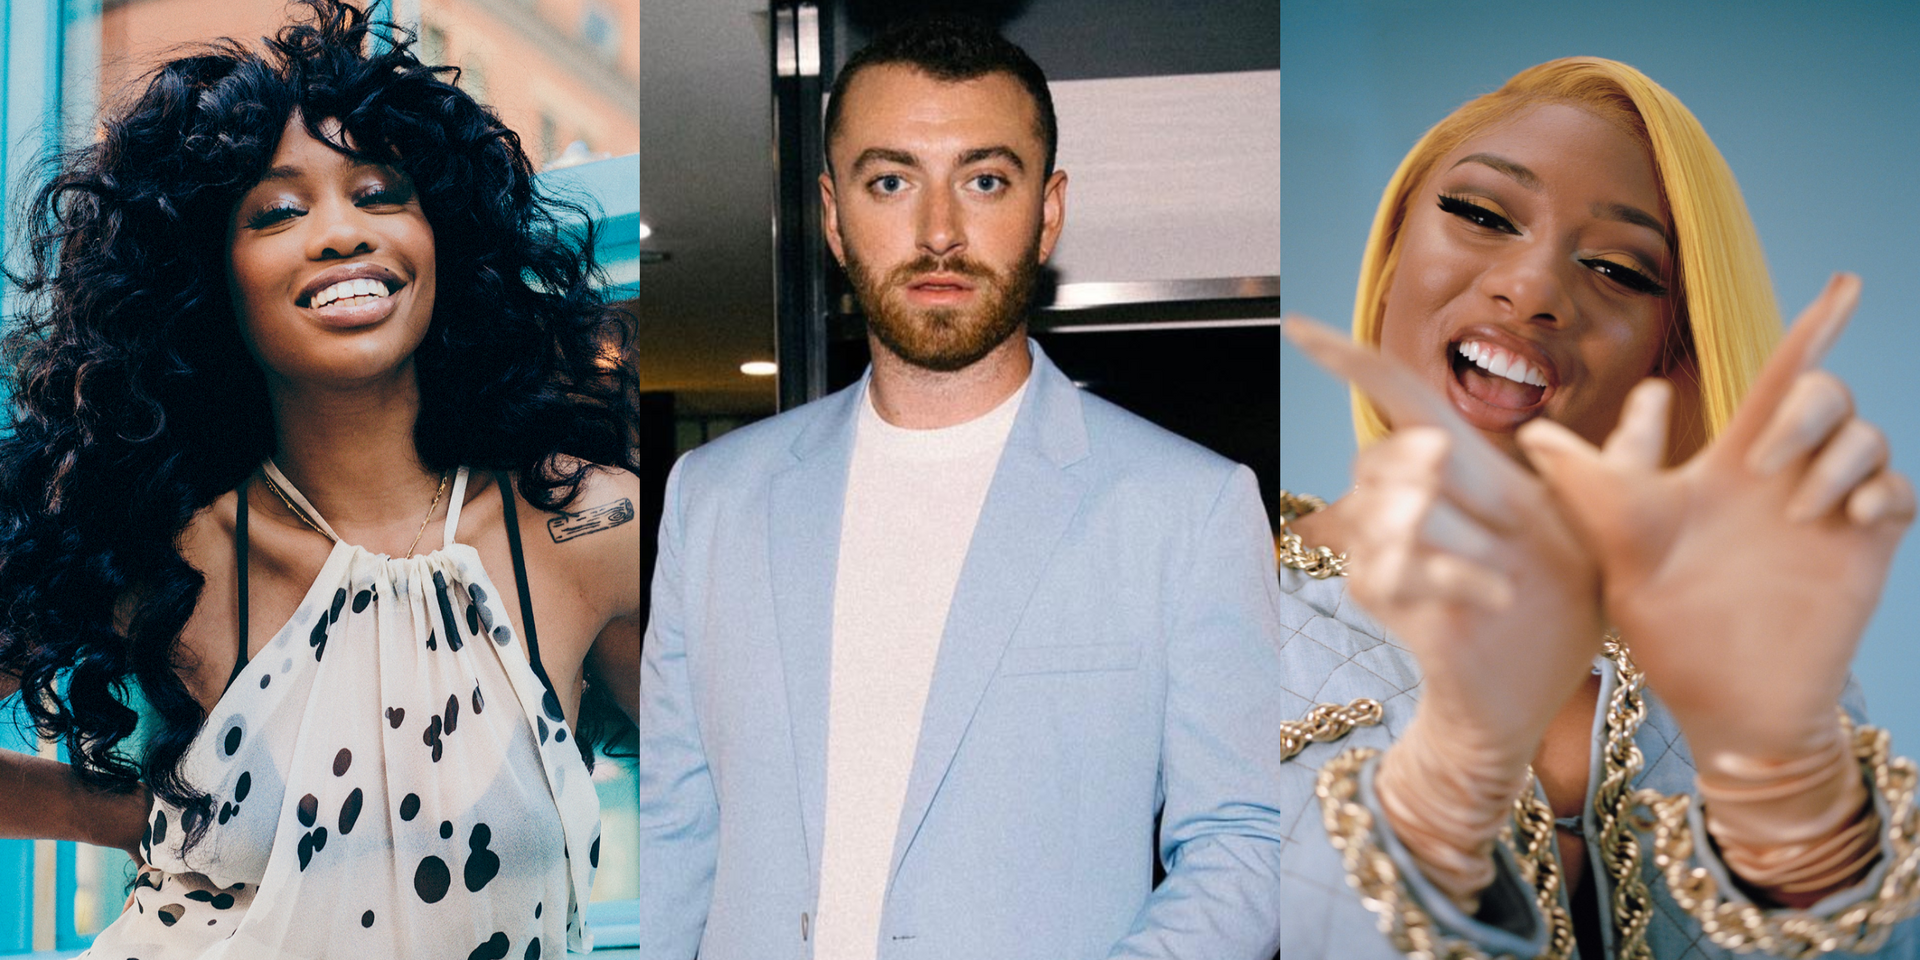 SZA to release new music this year, teases collaborations with Sam Smith and Megan Thee Stallion